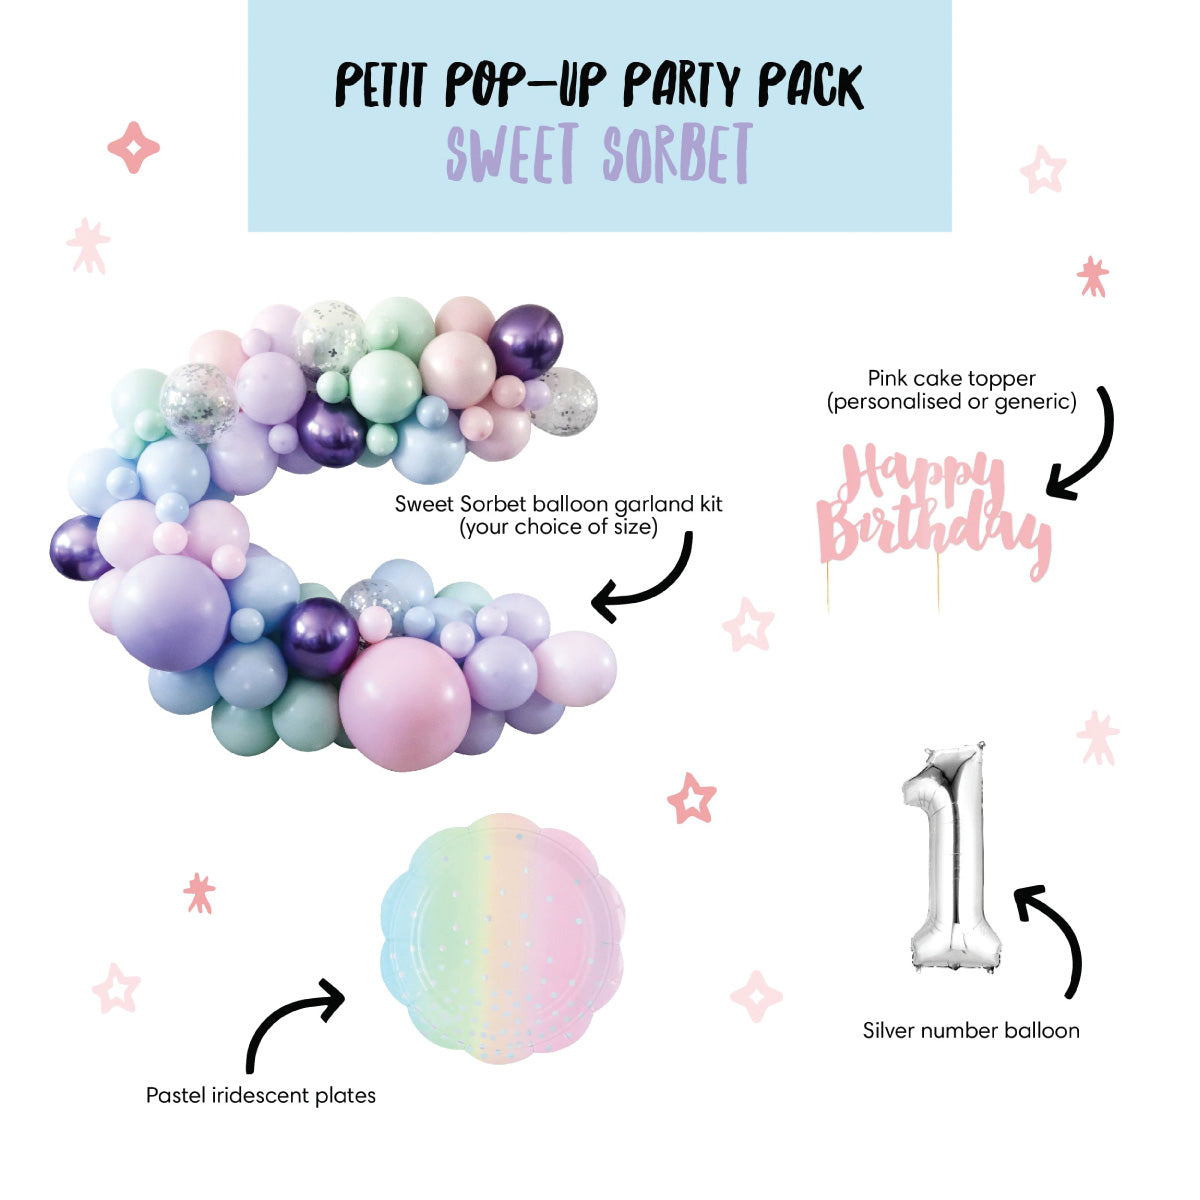 Petit Pop-Up Party Pack - Sweet Sorbet